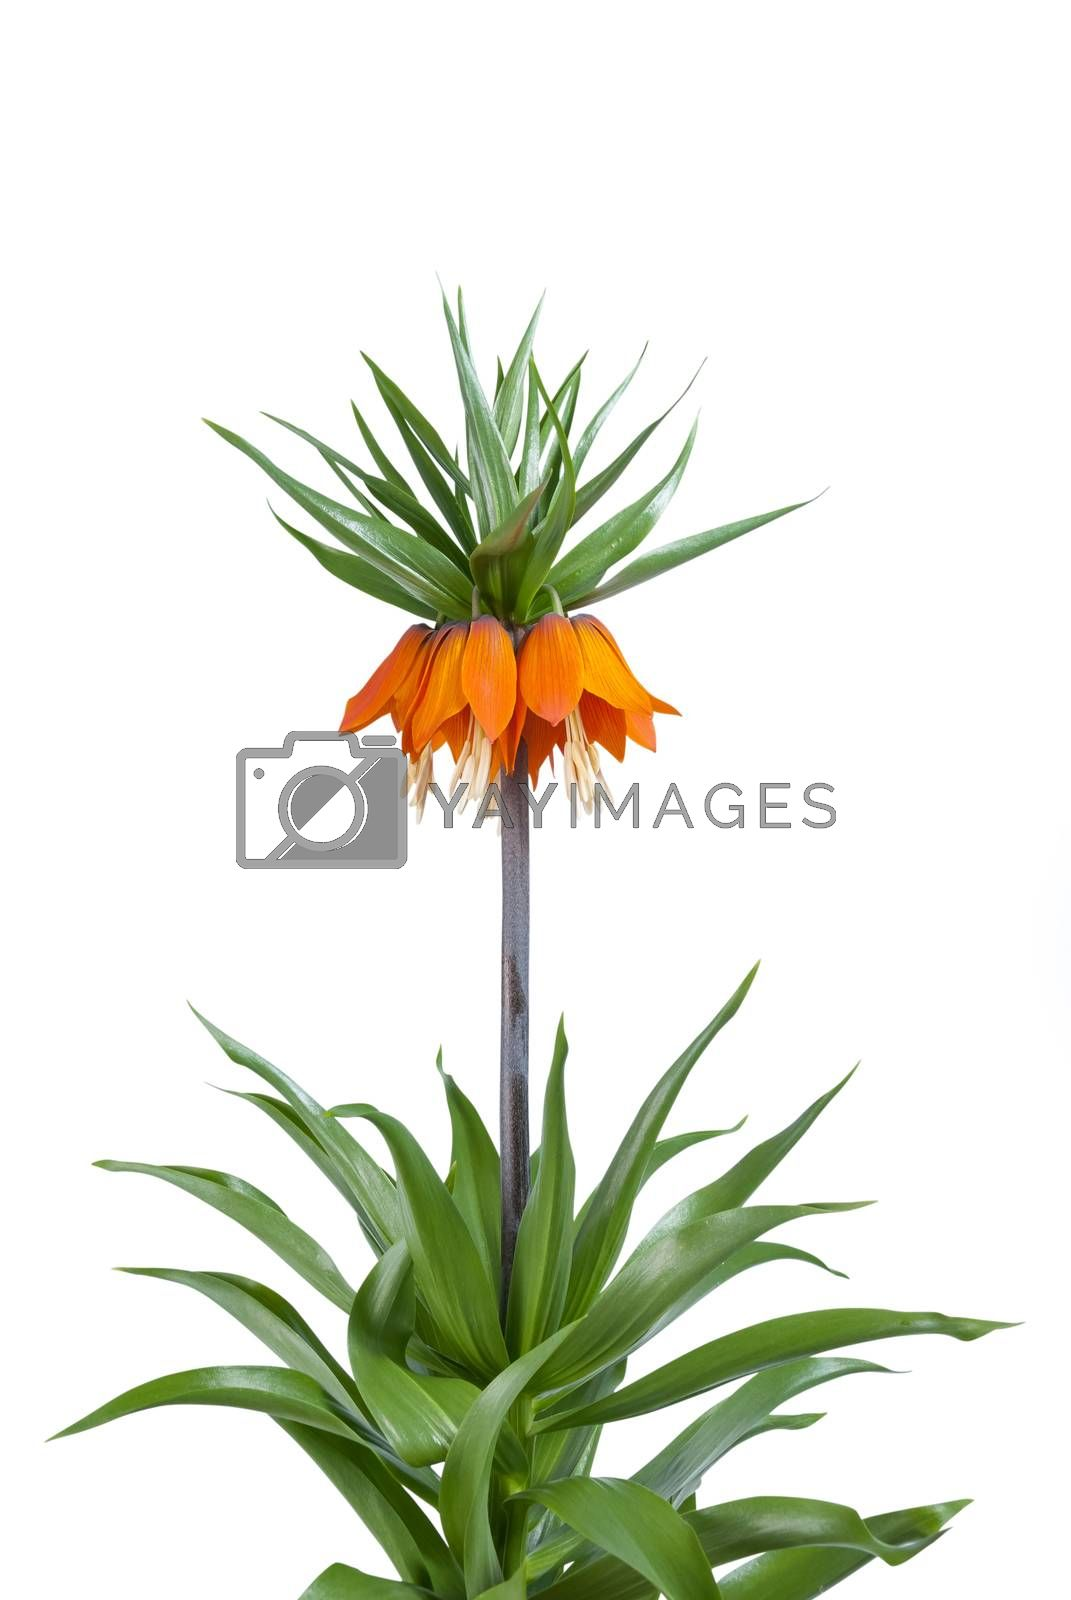 Bush of imperial flowers (Fritillaria imperialis) isolated on white background